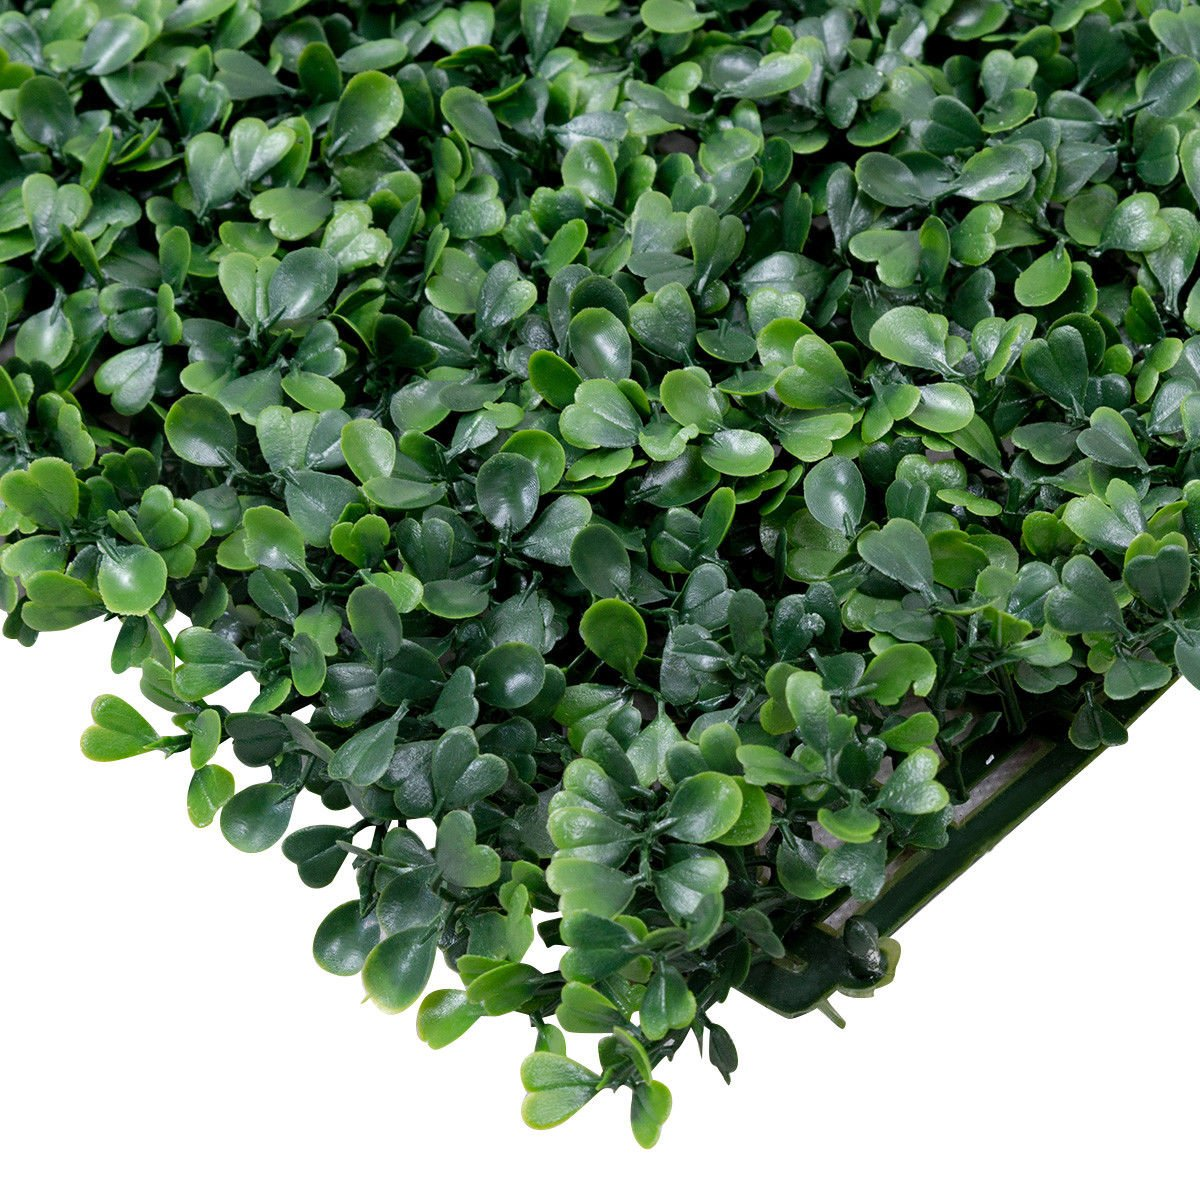 12 Pcs Boxwood Panels Giantex Artificial Privacy Fence Screen Boxwood Milan Leaf Grass Hedge Panels Mat Indoor Outdoor Topiary Decorative Fake Plant Wall 20x20